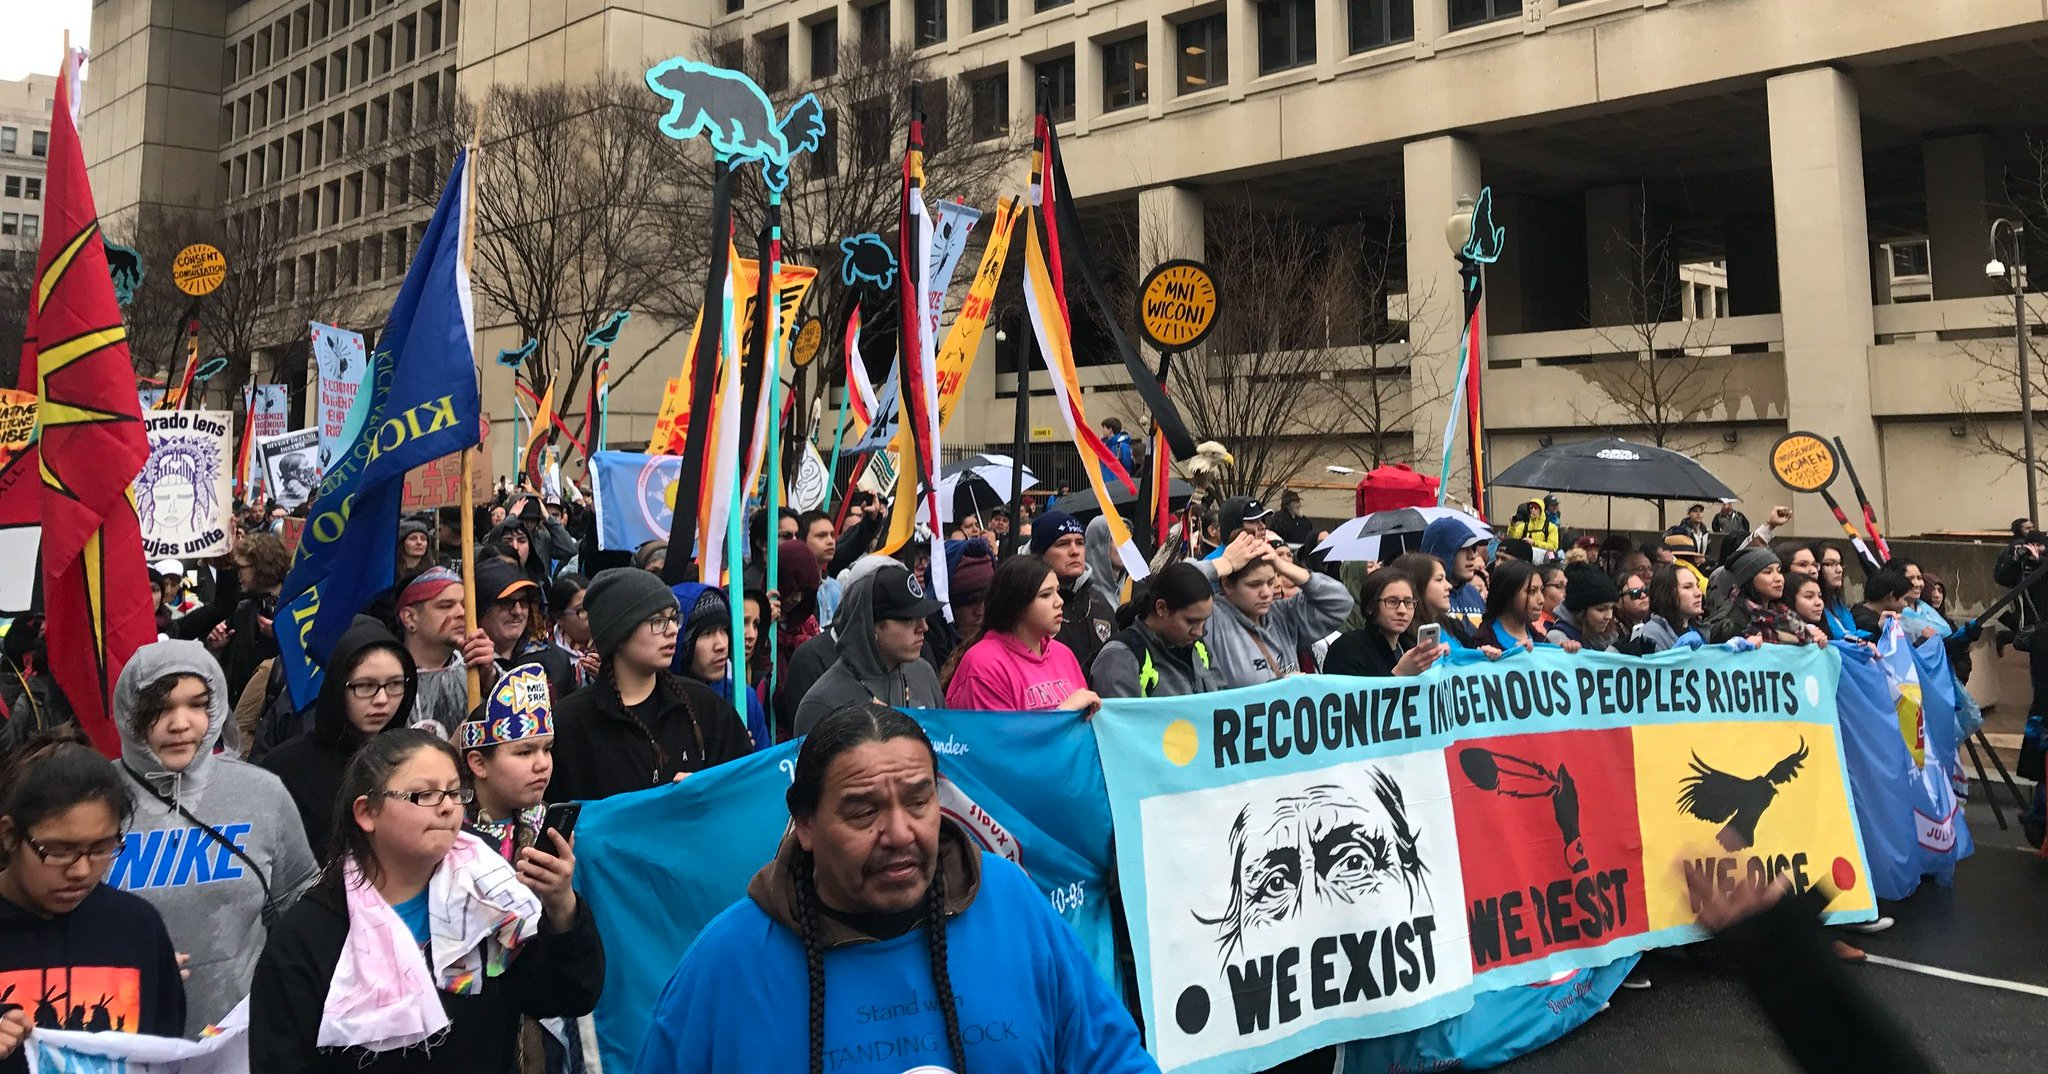 Native Nations Rise March in Washington, D.C. in 2017